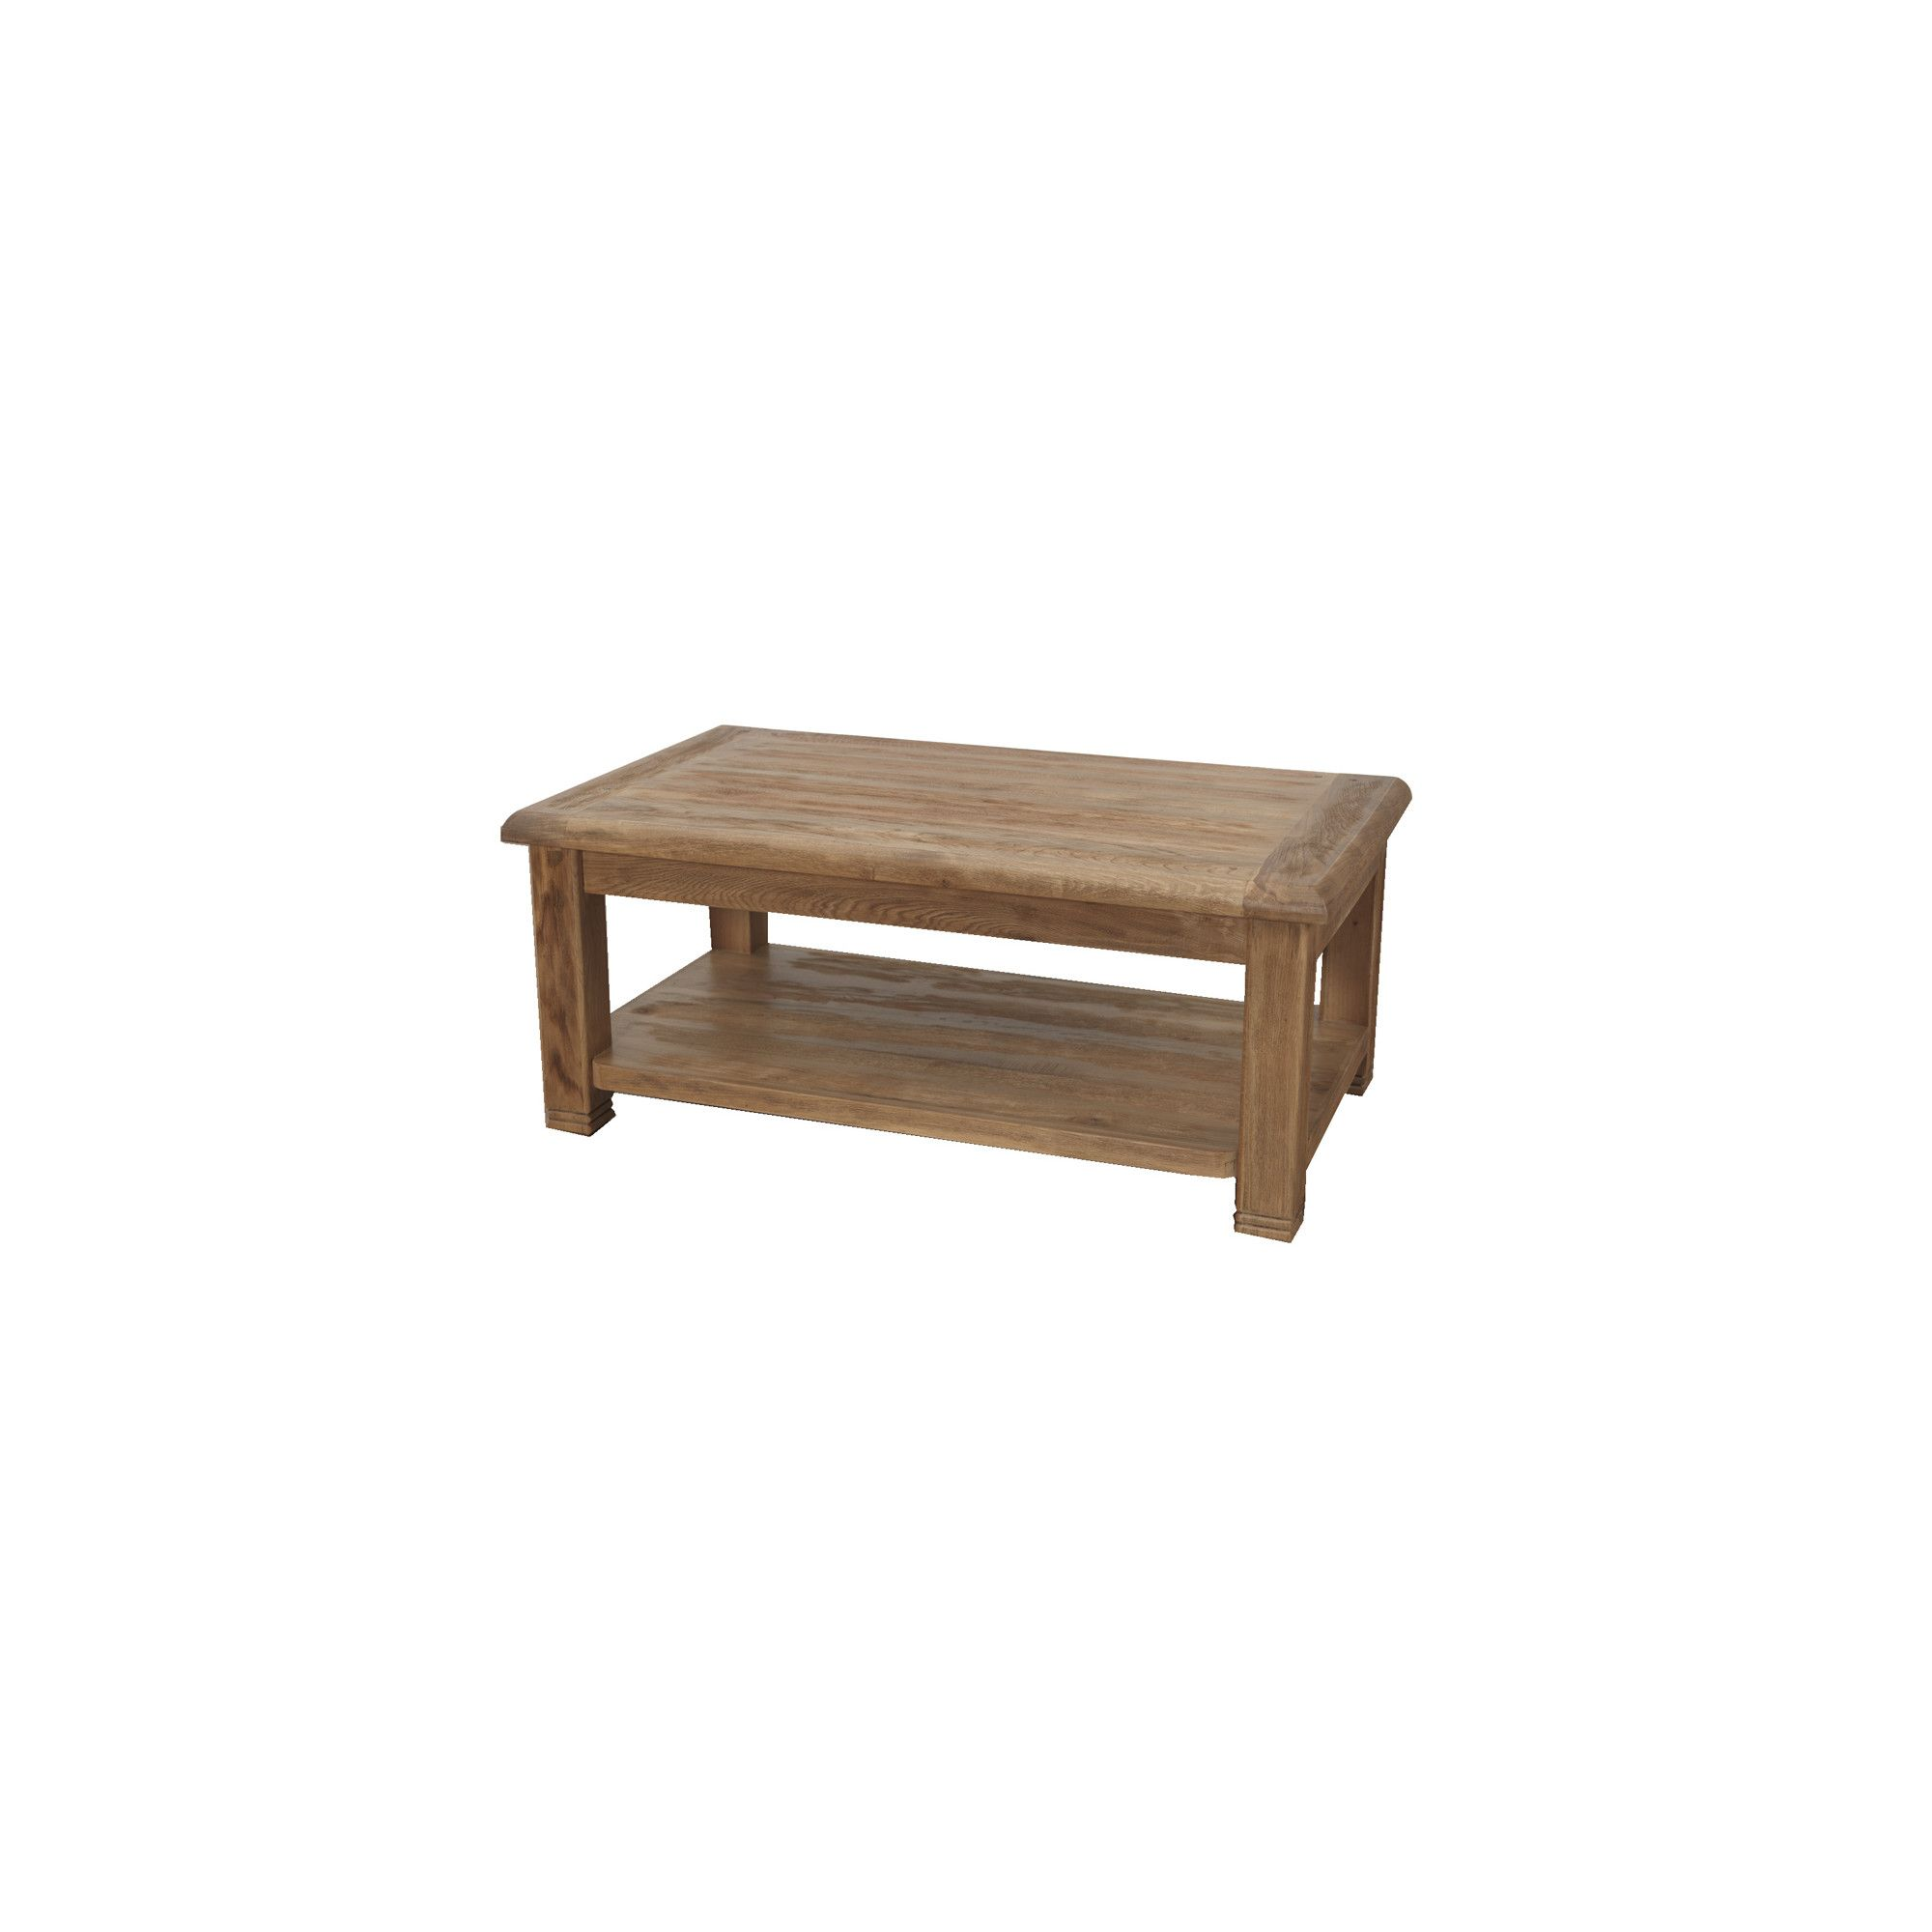 Furniture Link Danube Coffee Table in Weathered Oak at Tesco Direct